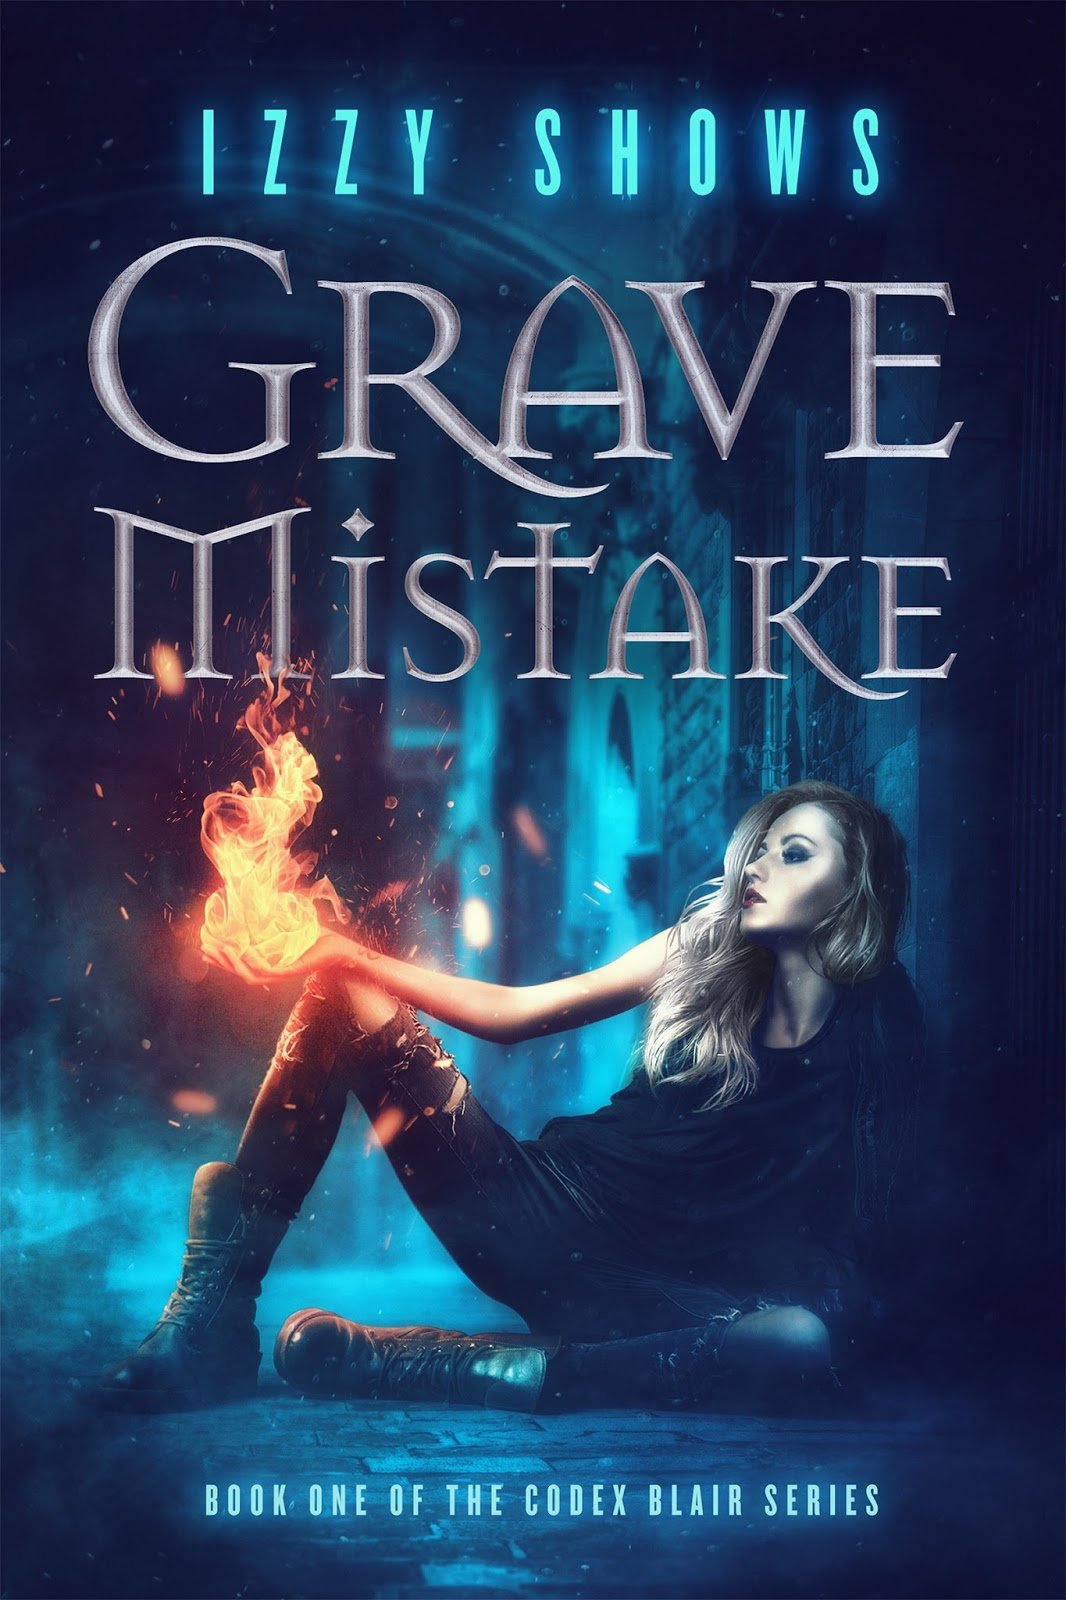 Book Cover Fantasy Zodiac : Starangels reviews release blitz grave mistake by izzy